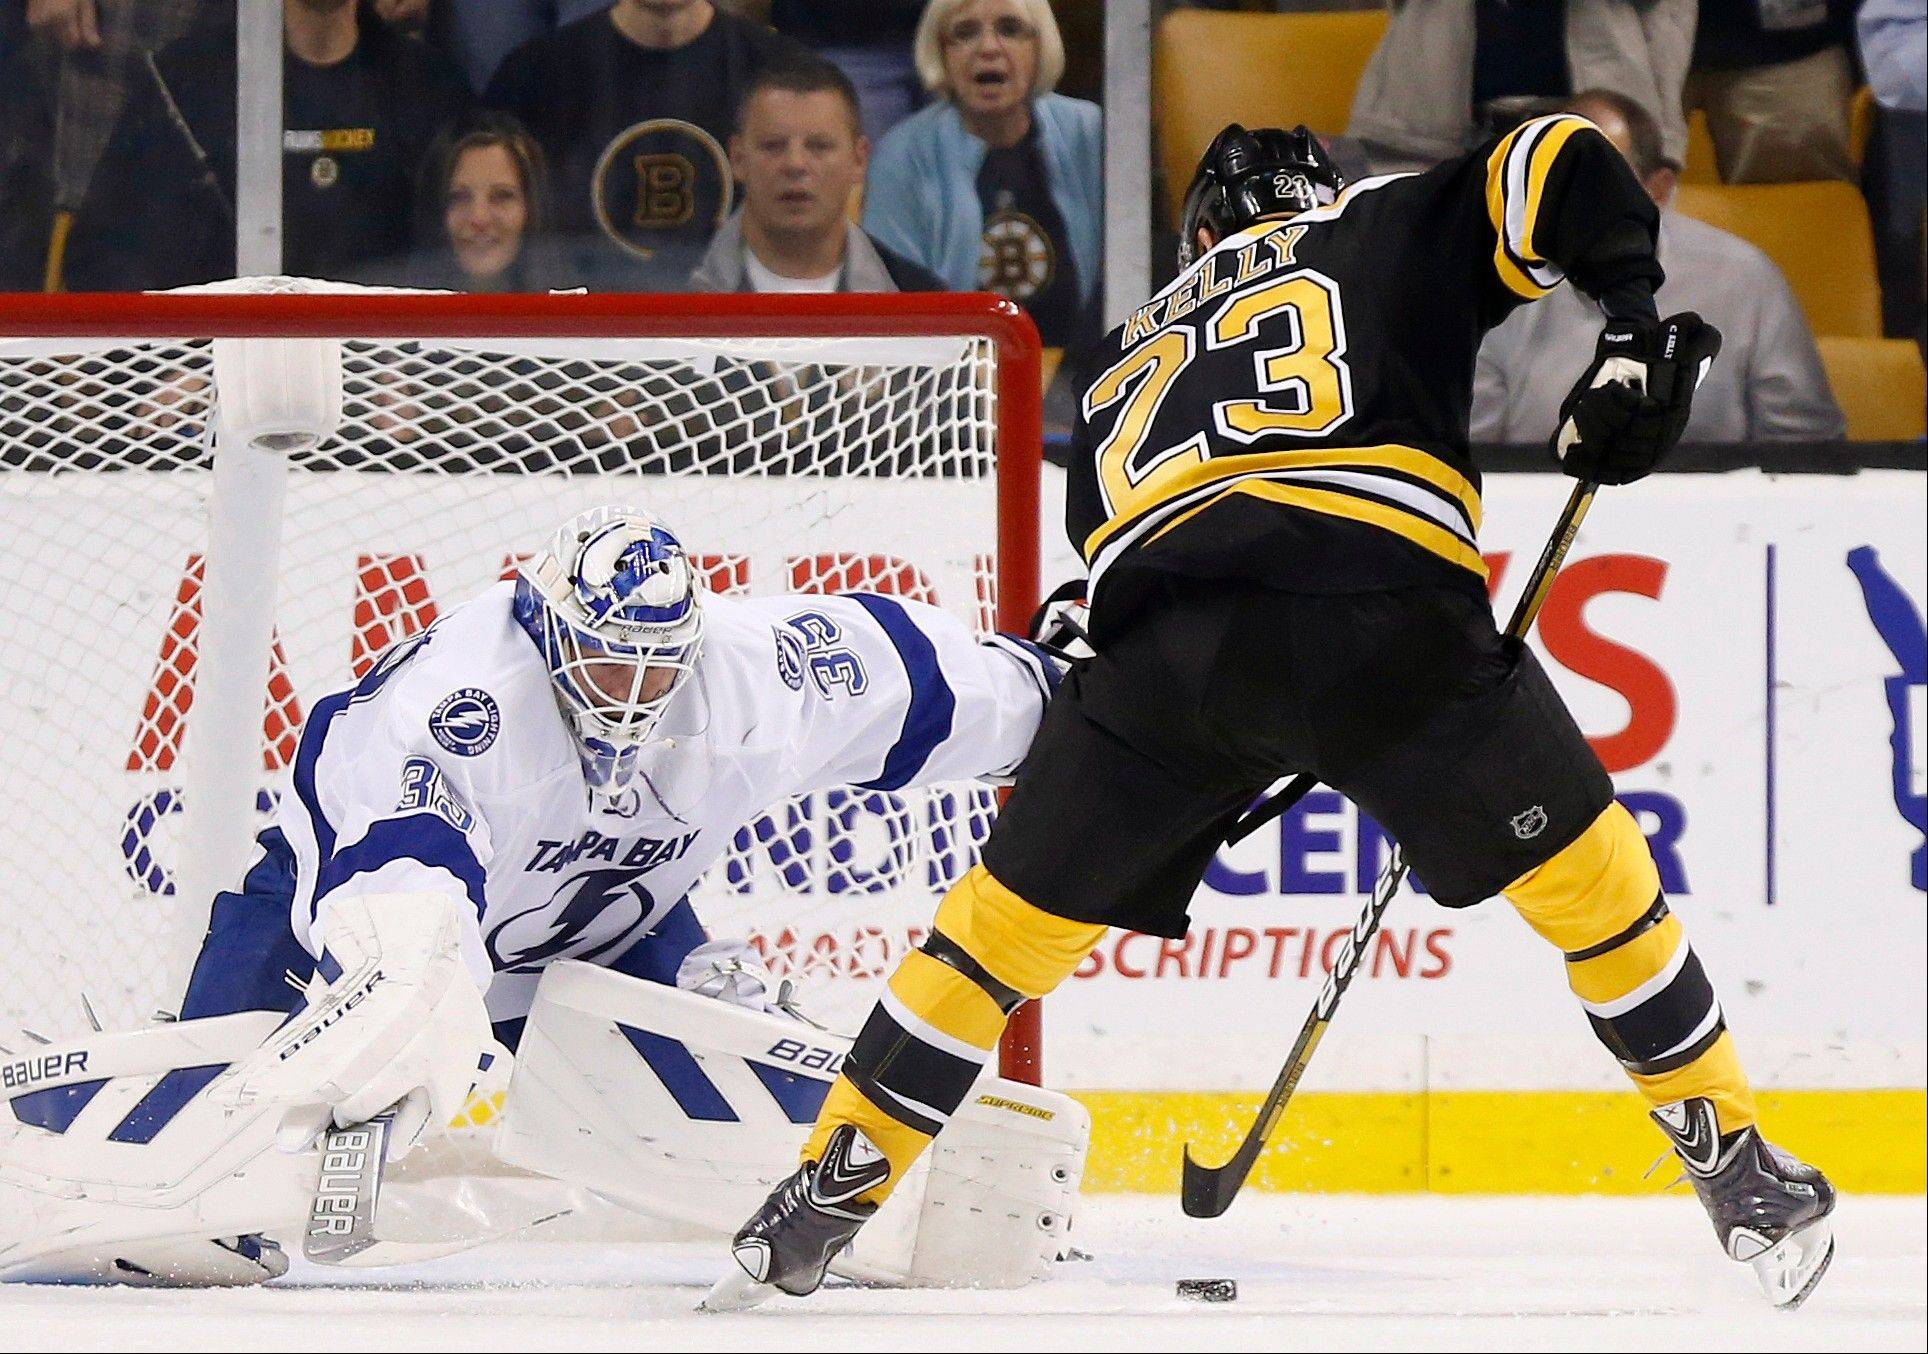 Boston Bruins' Chris Kelly (23) sets up to score on a penalty shot against Tampa Bay Lightning's Anders Lindback (39), of Sweden, in the first period of an NHL hockey game in Boston, Thursday, Oct. 3, 2013.